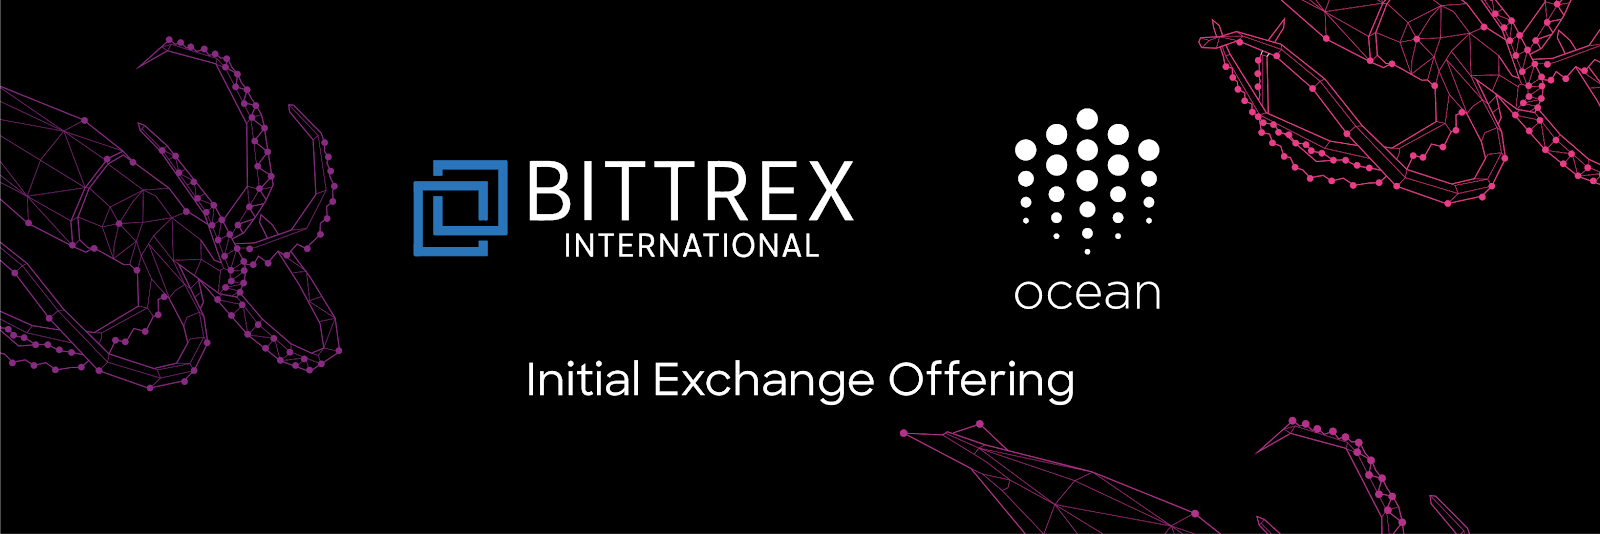 Future-Facing Borderless Data Sharing Platform Ocean Protocol's IEO on Bittrex Begins April 30th, 2019